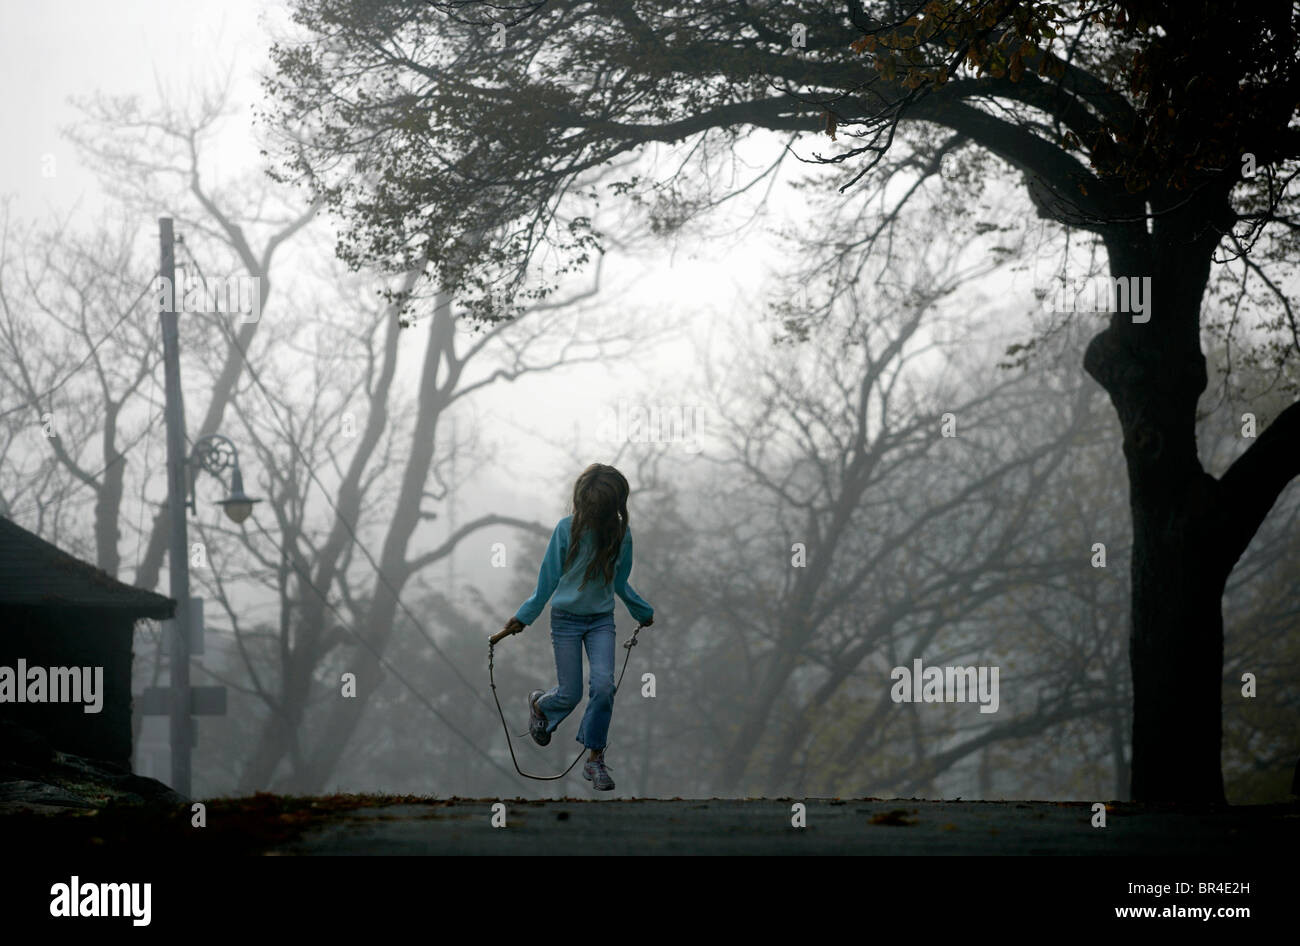 A young girl jumps rope. - Stock Image